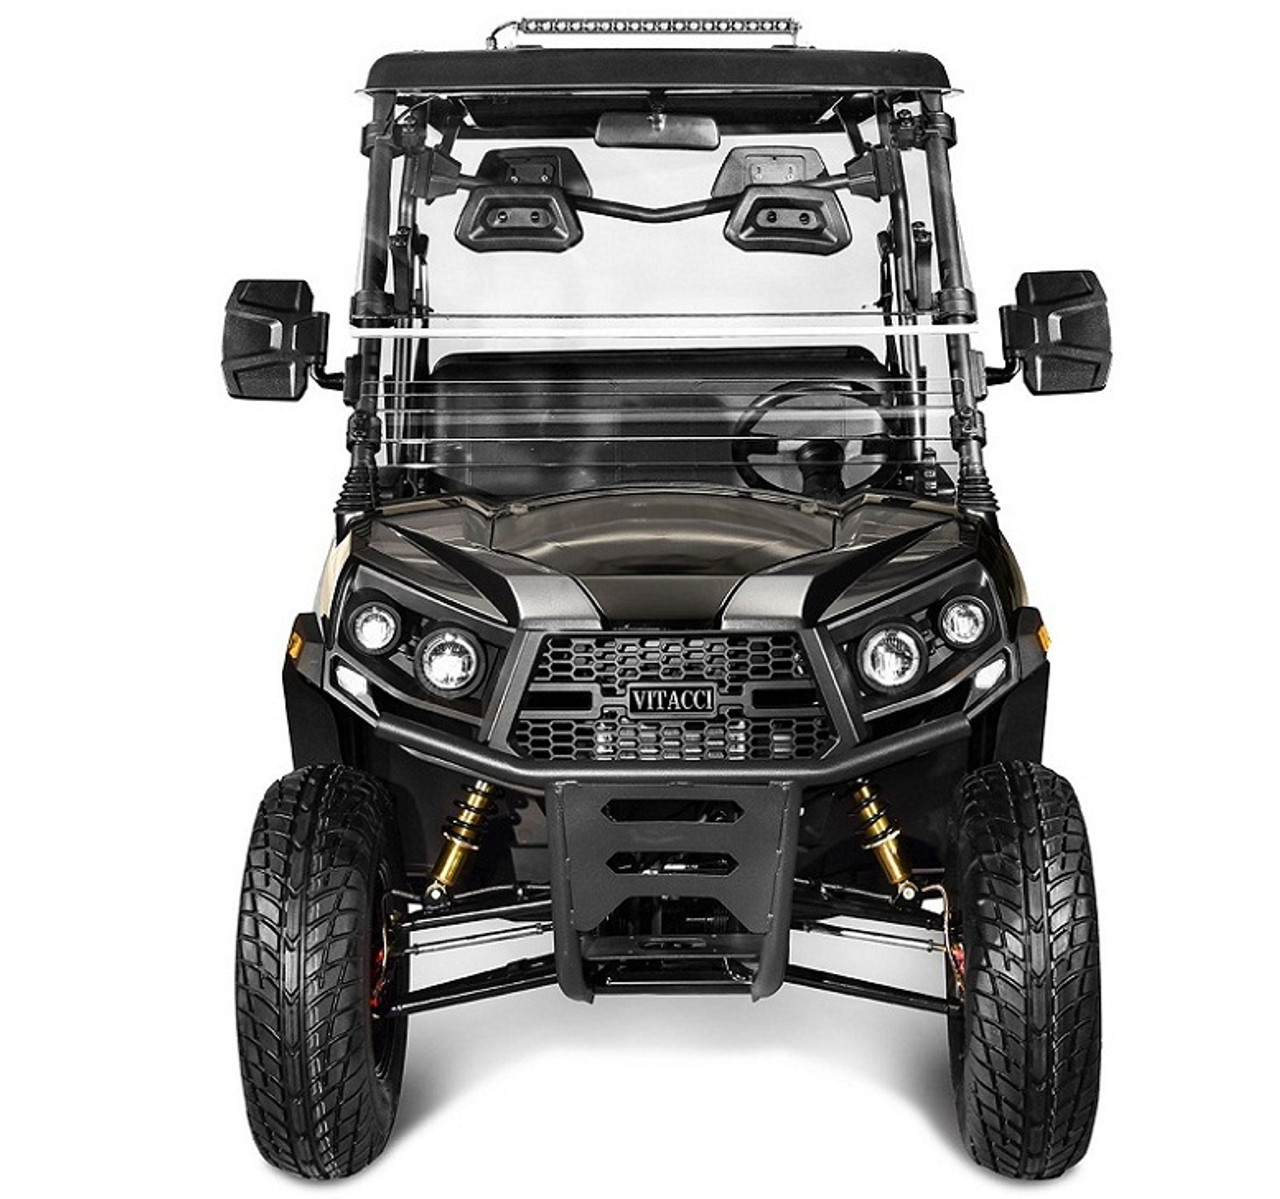 Grey - Vitacci Rover-200 EFI 169cc (Golf Cart) UTV, 4-stroke, Single-cylinder, Oil-cooled